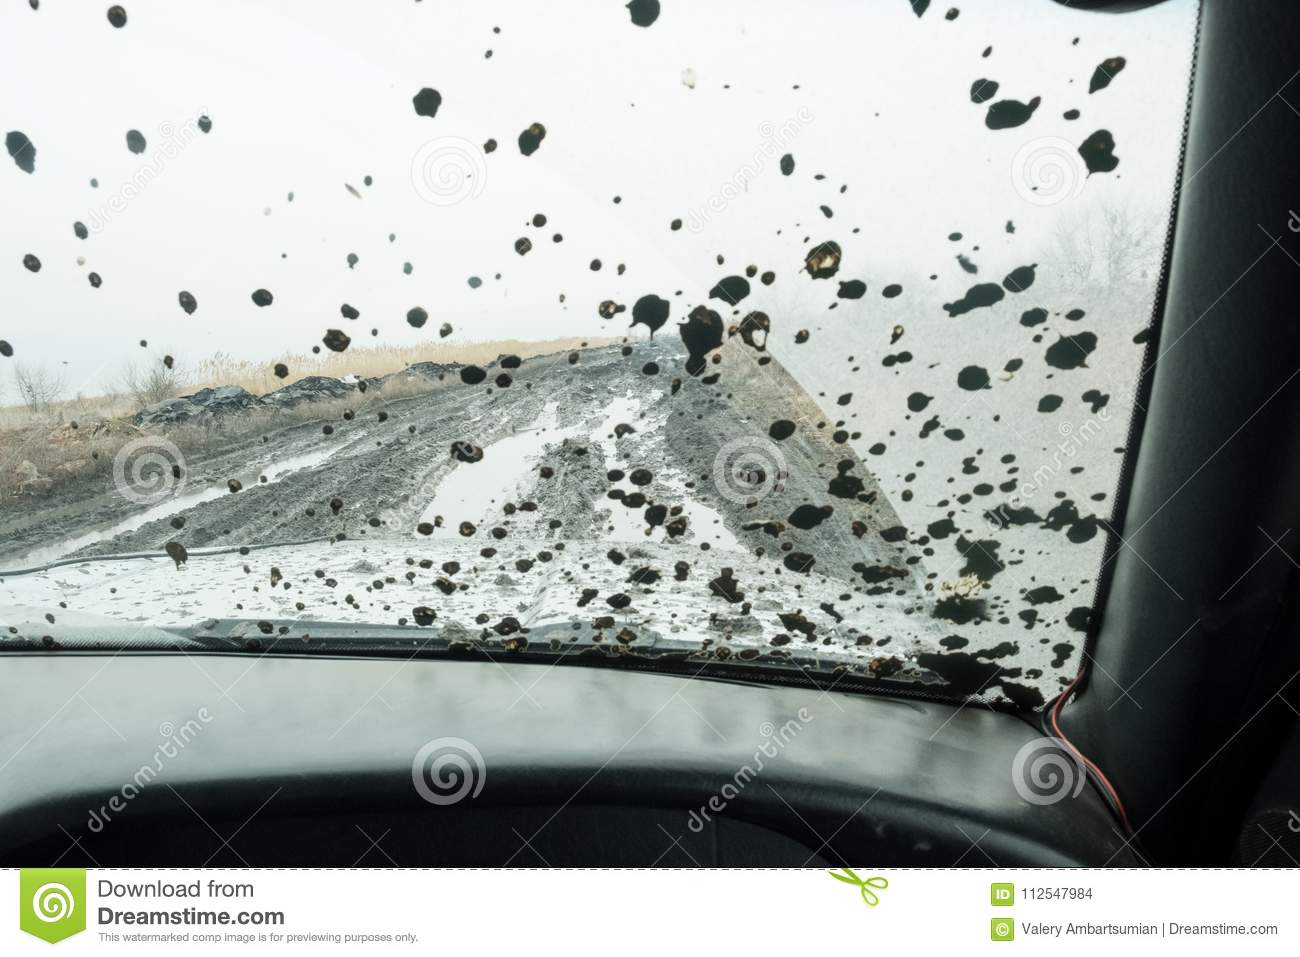 The front glass of the car is stained with dirt